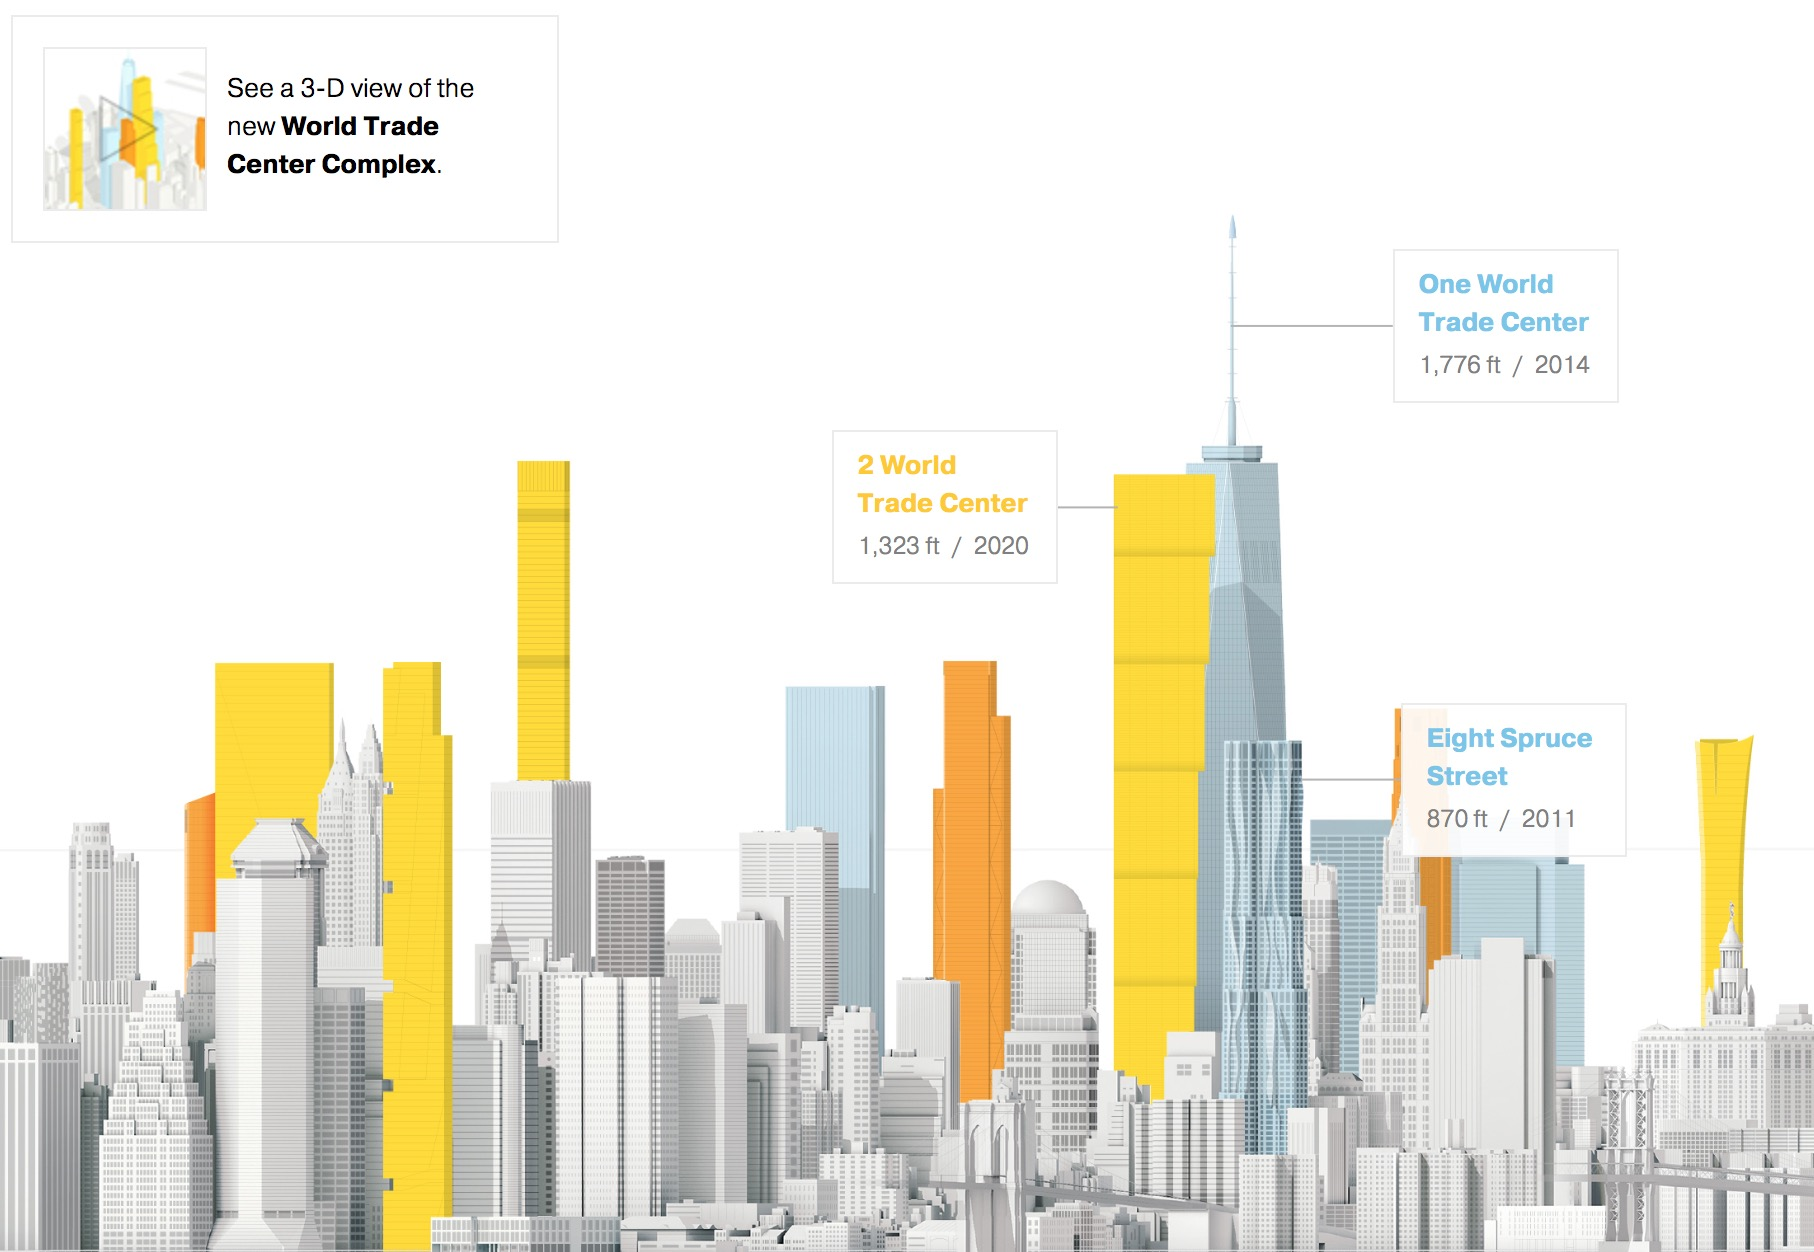 National Geographic S Interactive Map Shows You The New York City